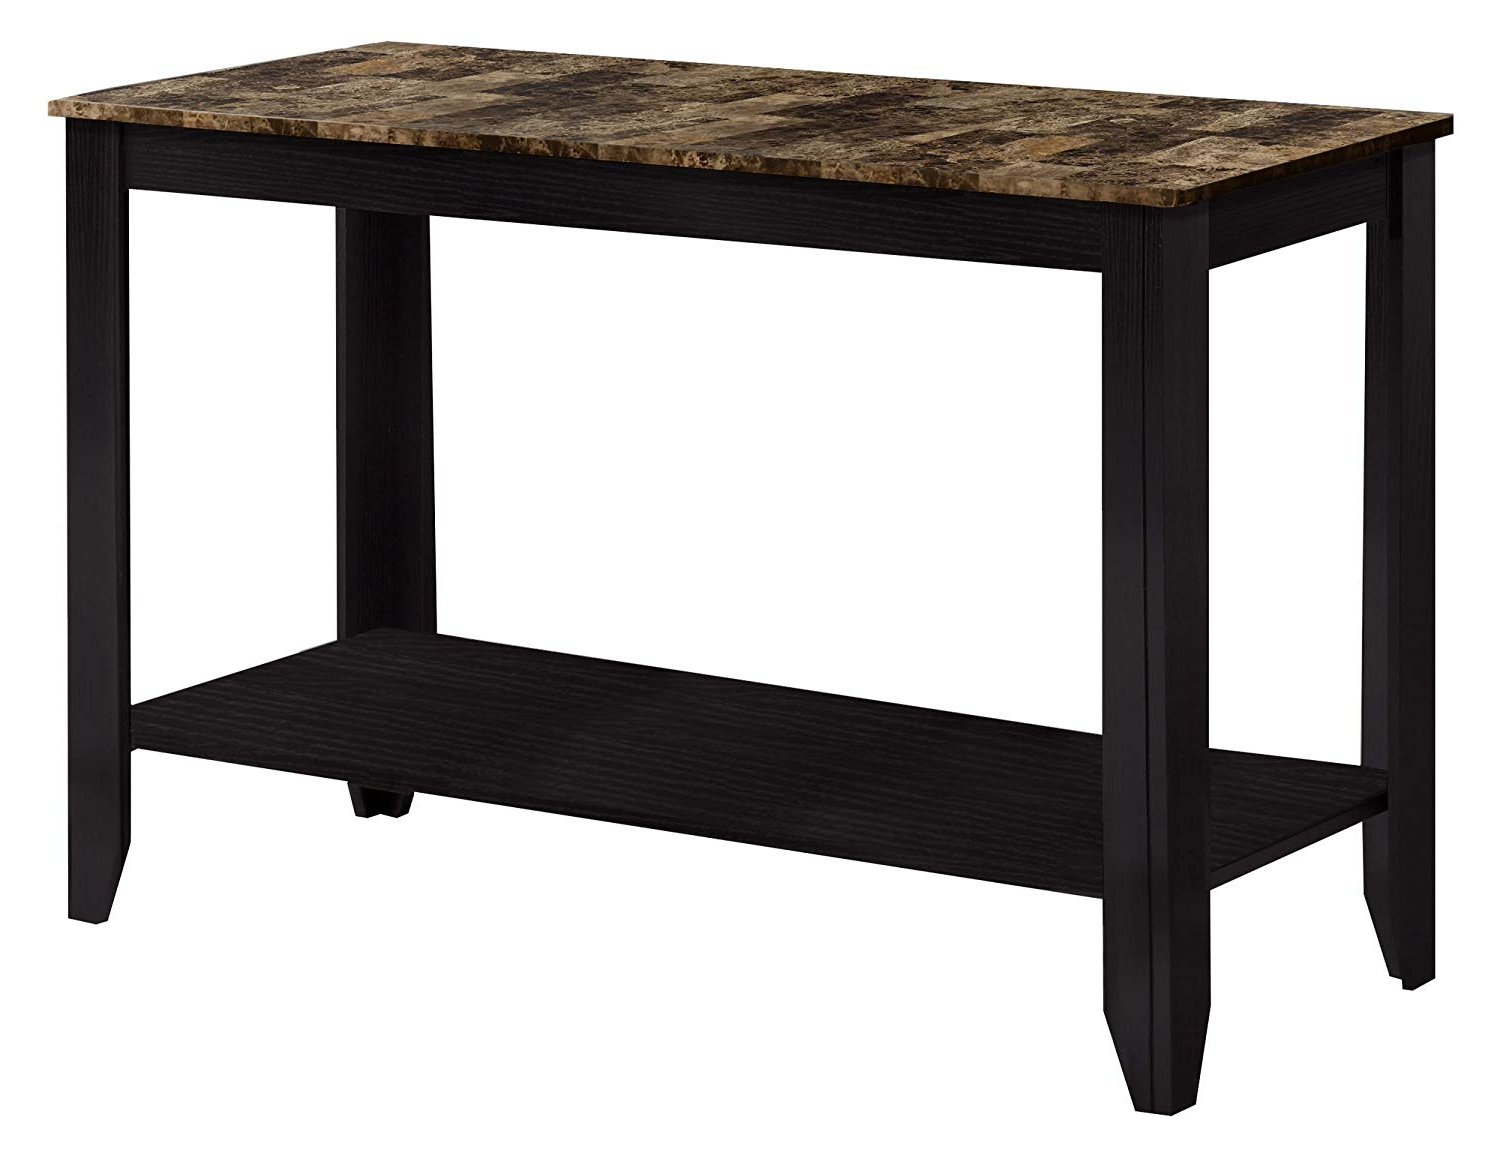 Amazon: Monarch Specialties Marble Look Top Sofa Console Table Intended For Preferred Parsons Grey Solid Surface Top & Dark Steel Base 48x16 Console Tables (View 18 of 20)